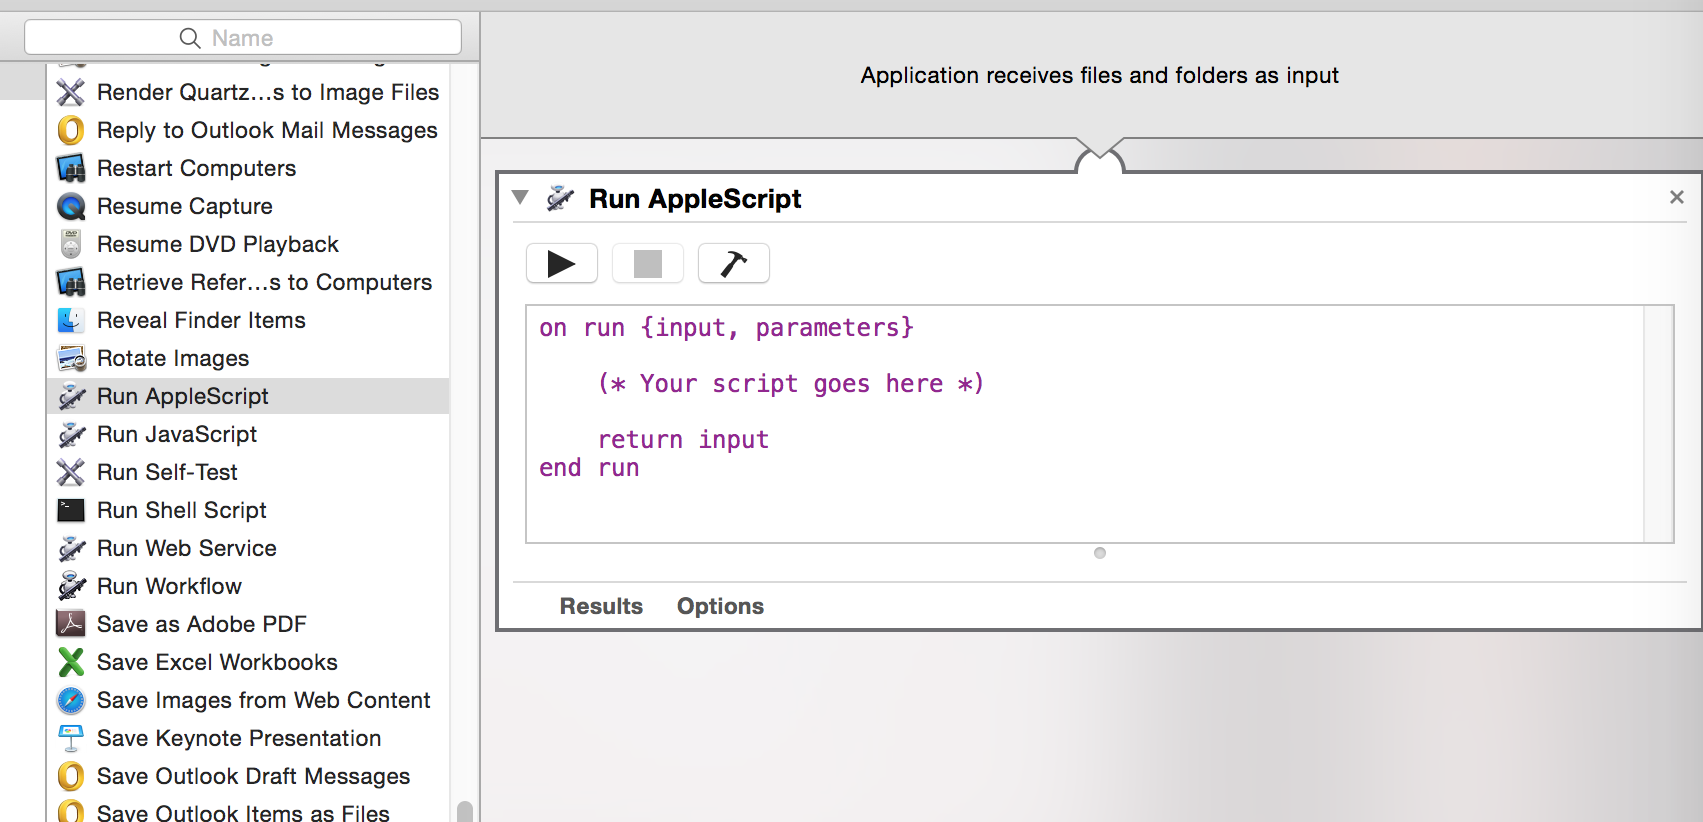 You can run AppleScript inside of Automator too, so don't scoff too much...